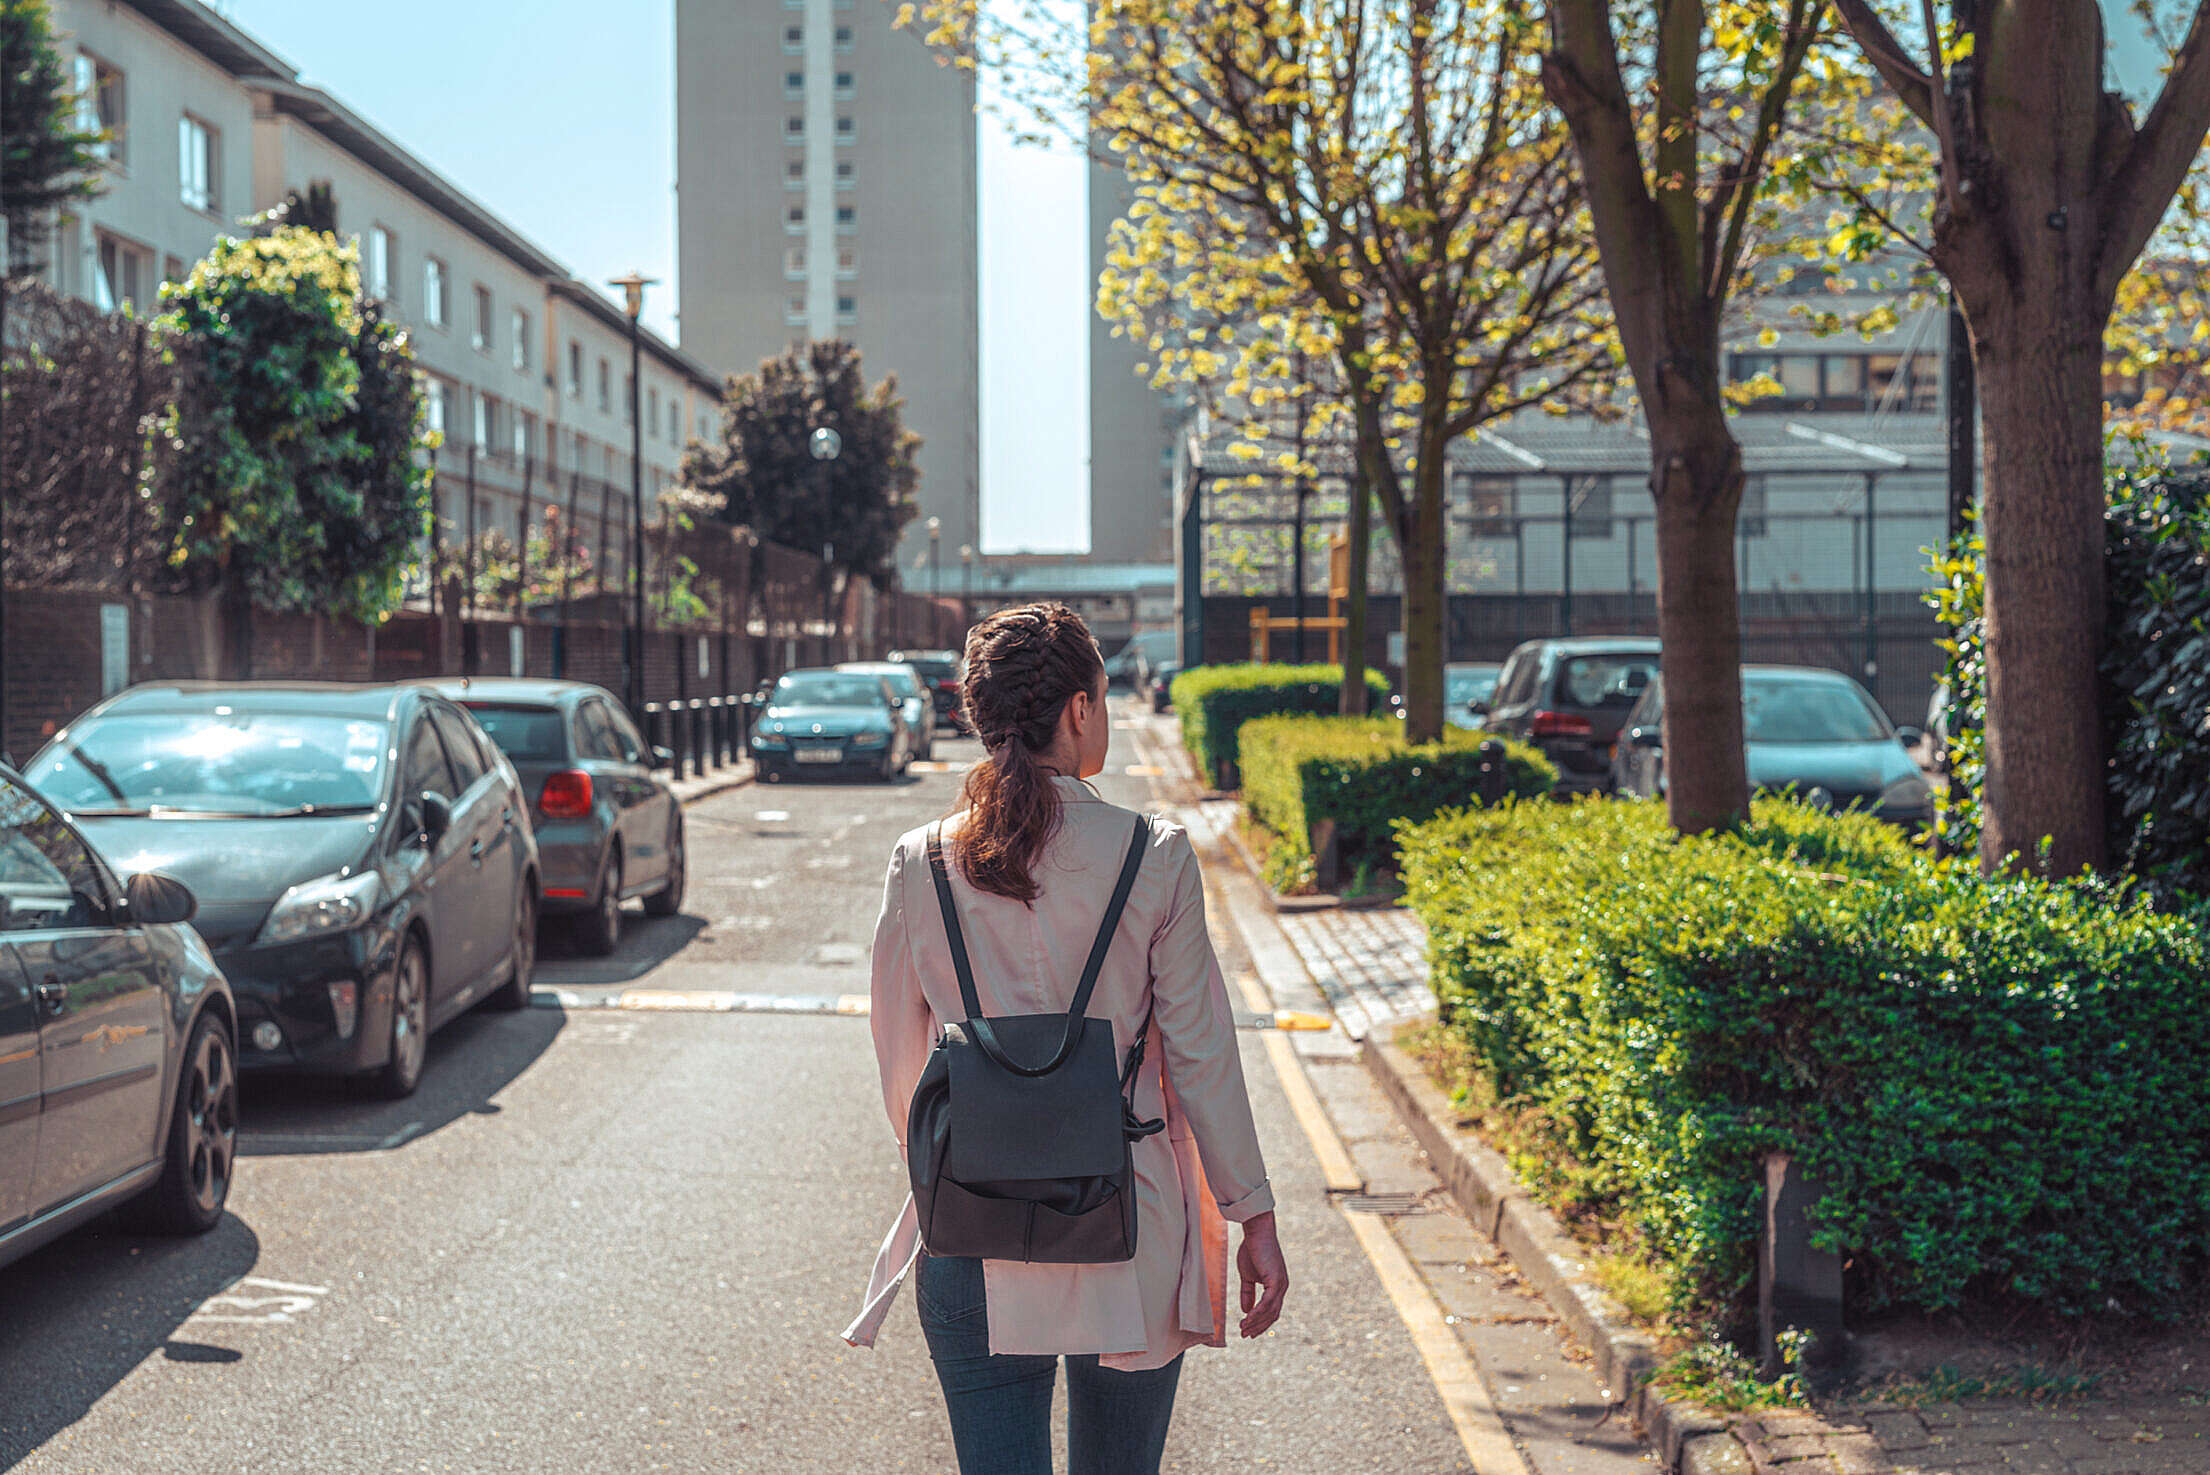 Young Solo Traveler Woman Walks Down a Street Free Stock Photo